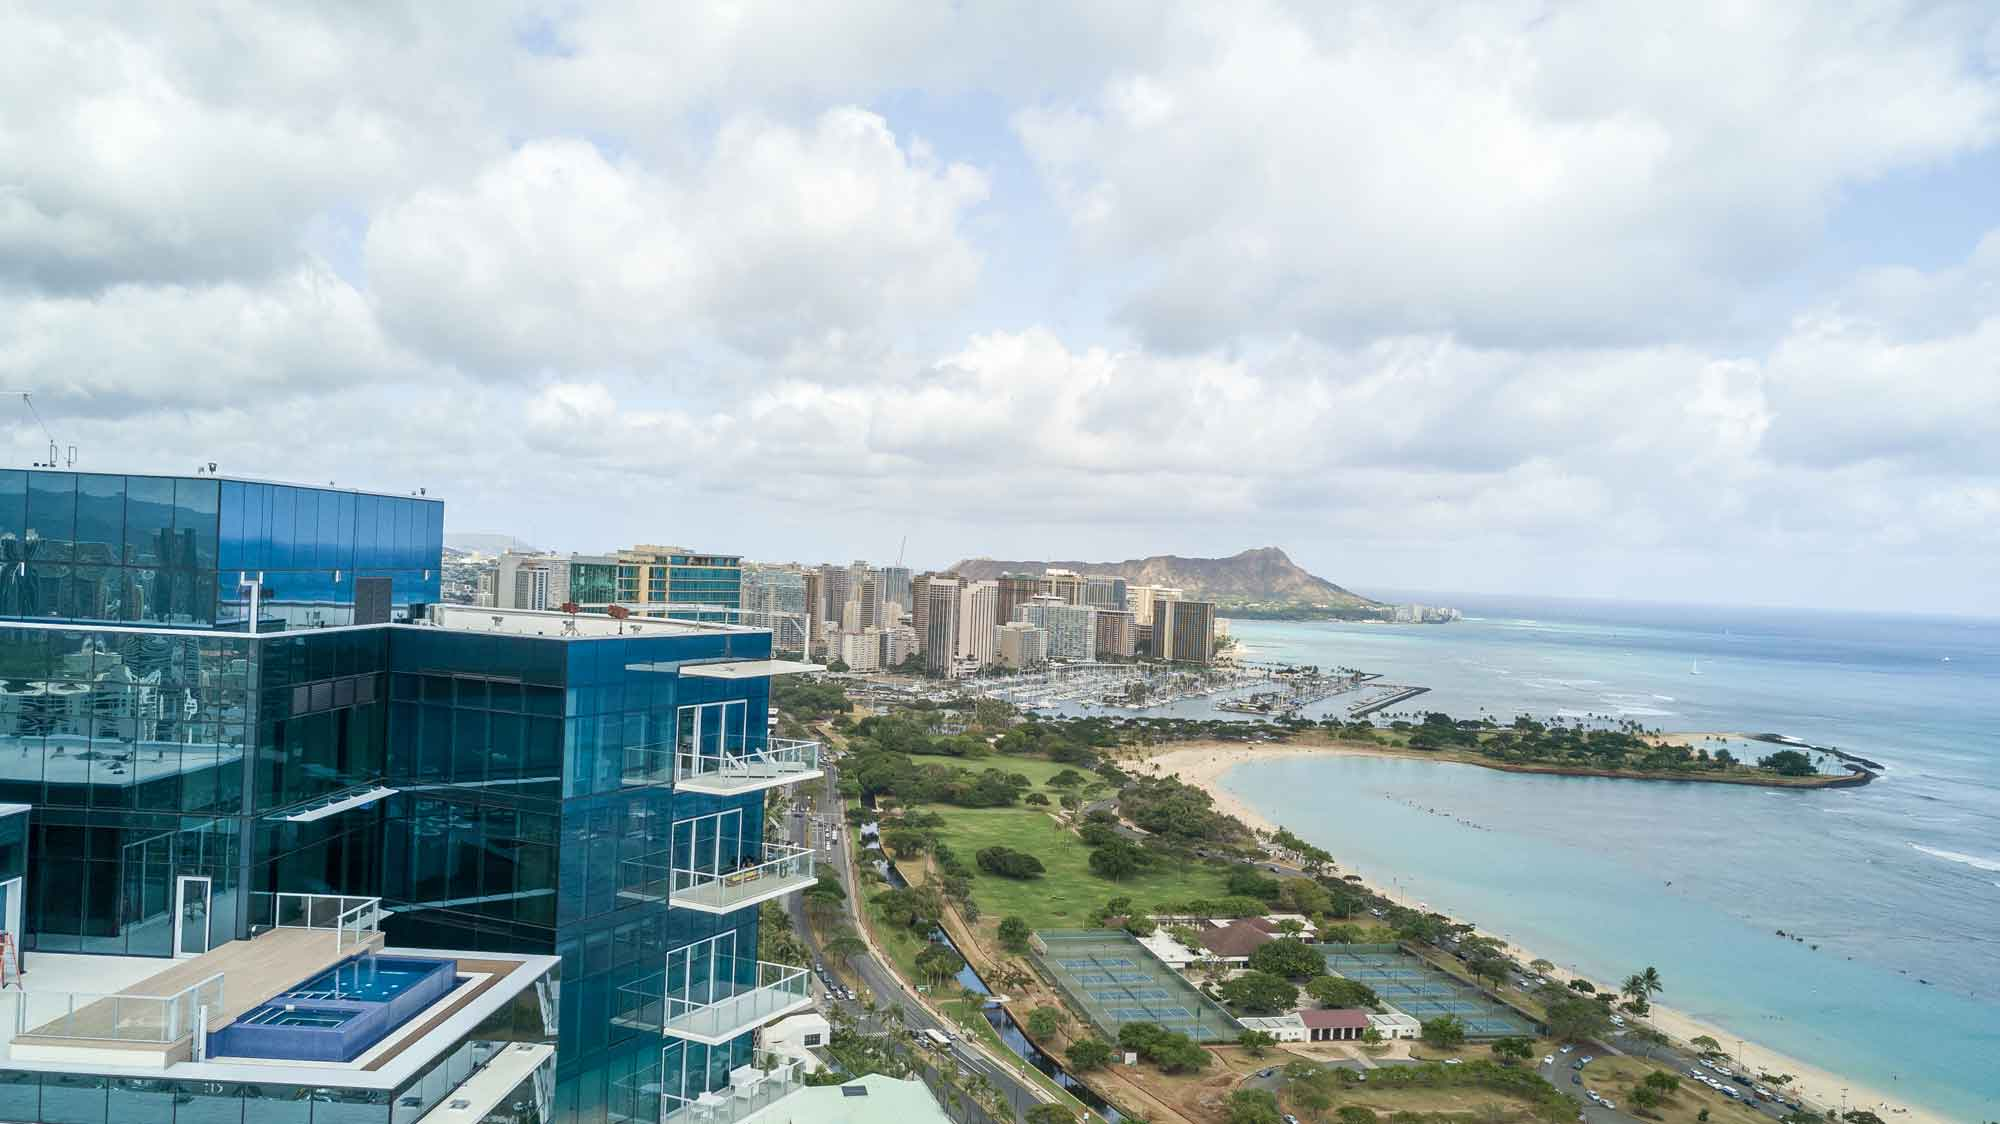 Cinematic vistas of Diamond Head, Waikiki, and Honolulu Harbor area a hallmark of this exclusive Waiea Tower penthouse.